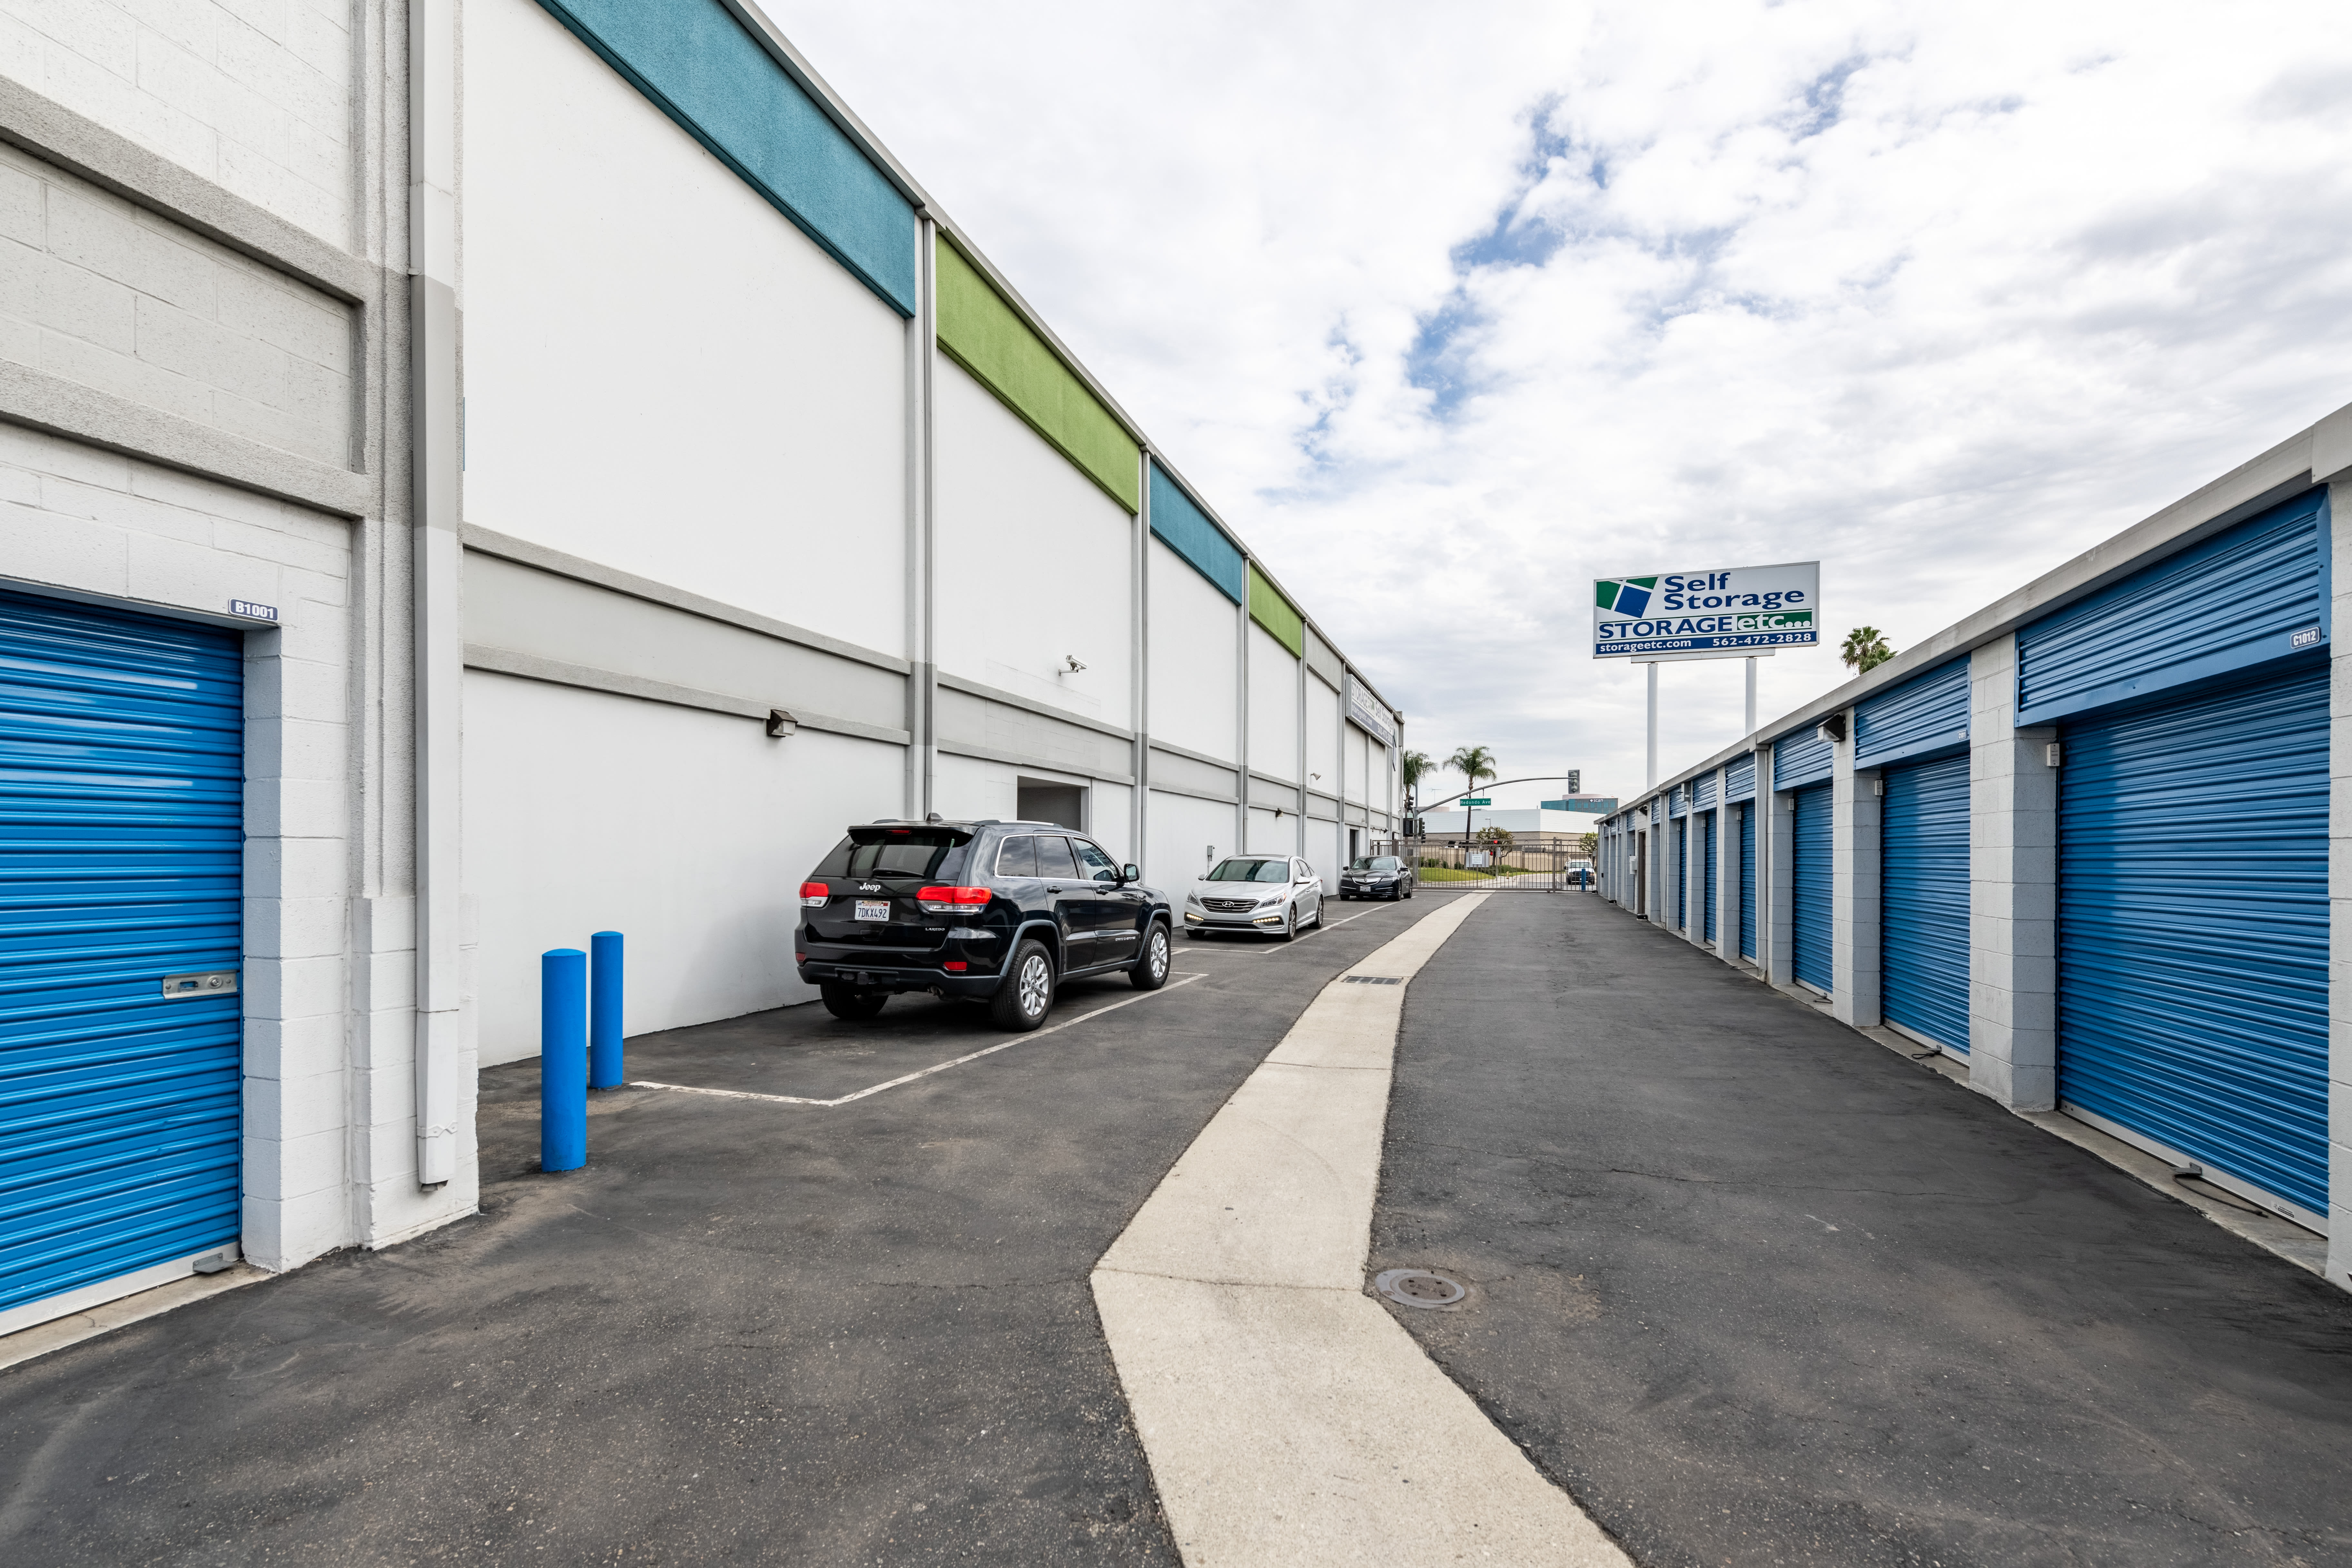 Drive Up Access Outdoor Storage Units at Storage Etc... Long Beach